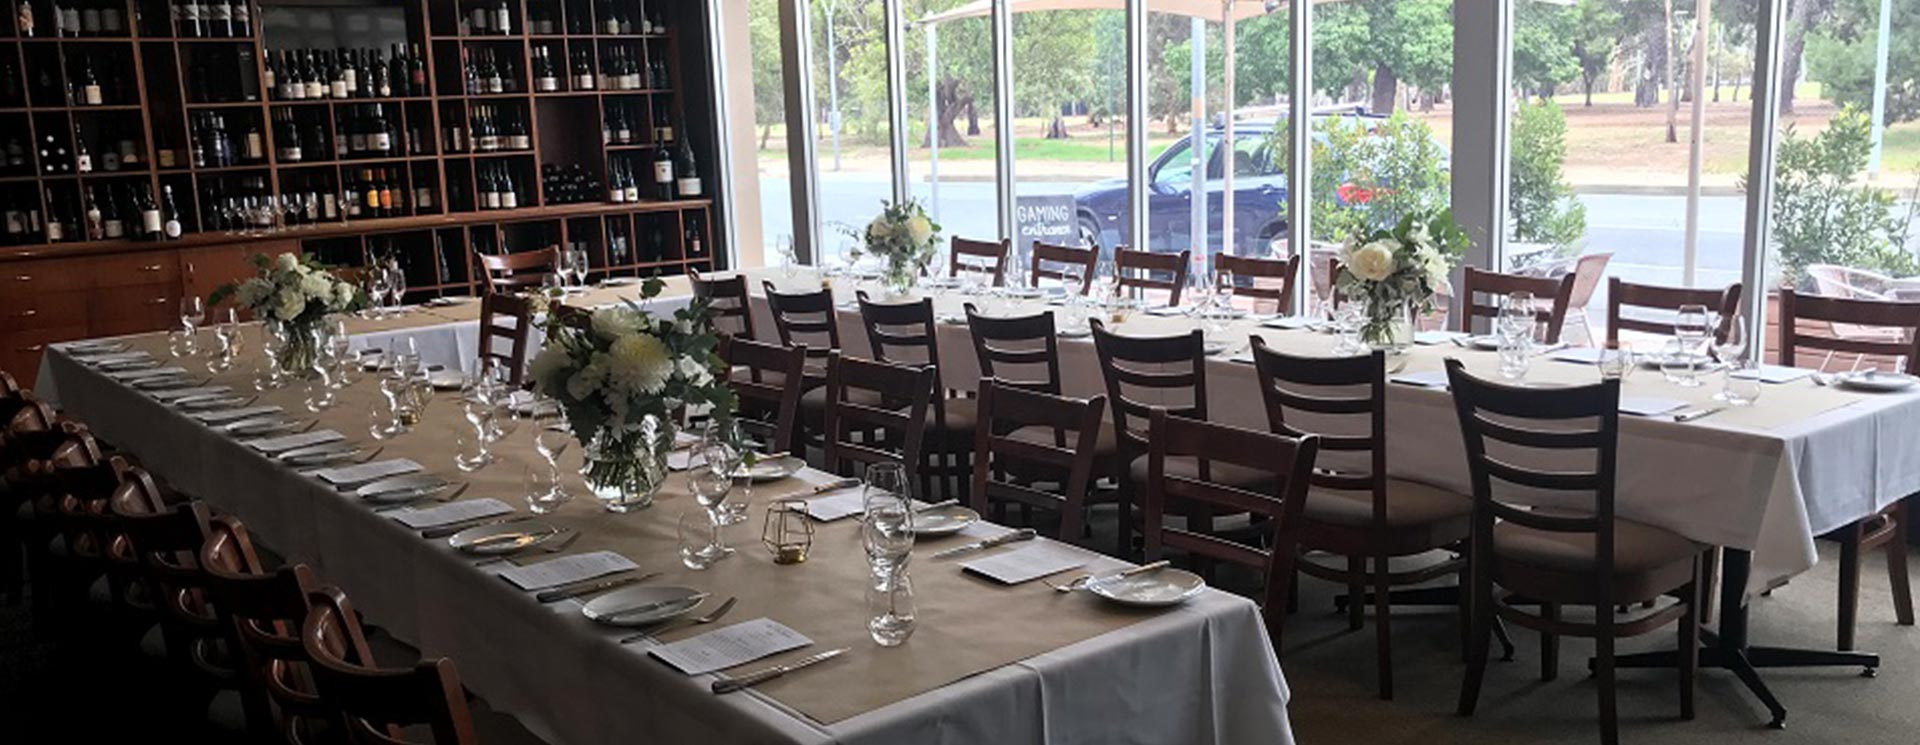 Bartons Restaurant - The Caledonian Hotel North Adelaide